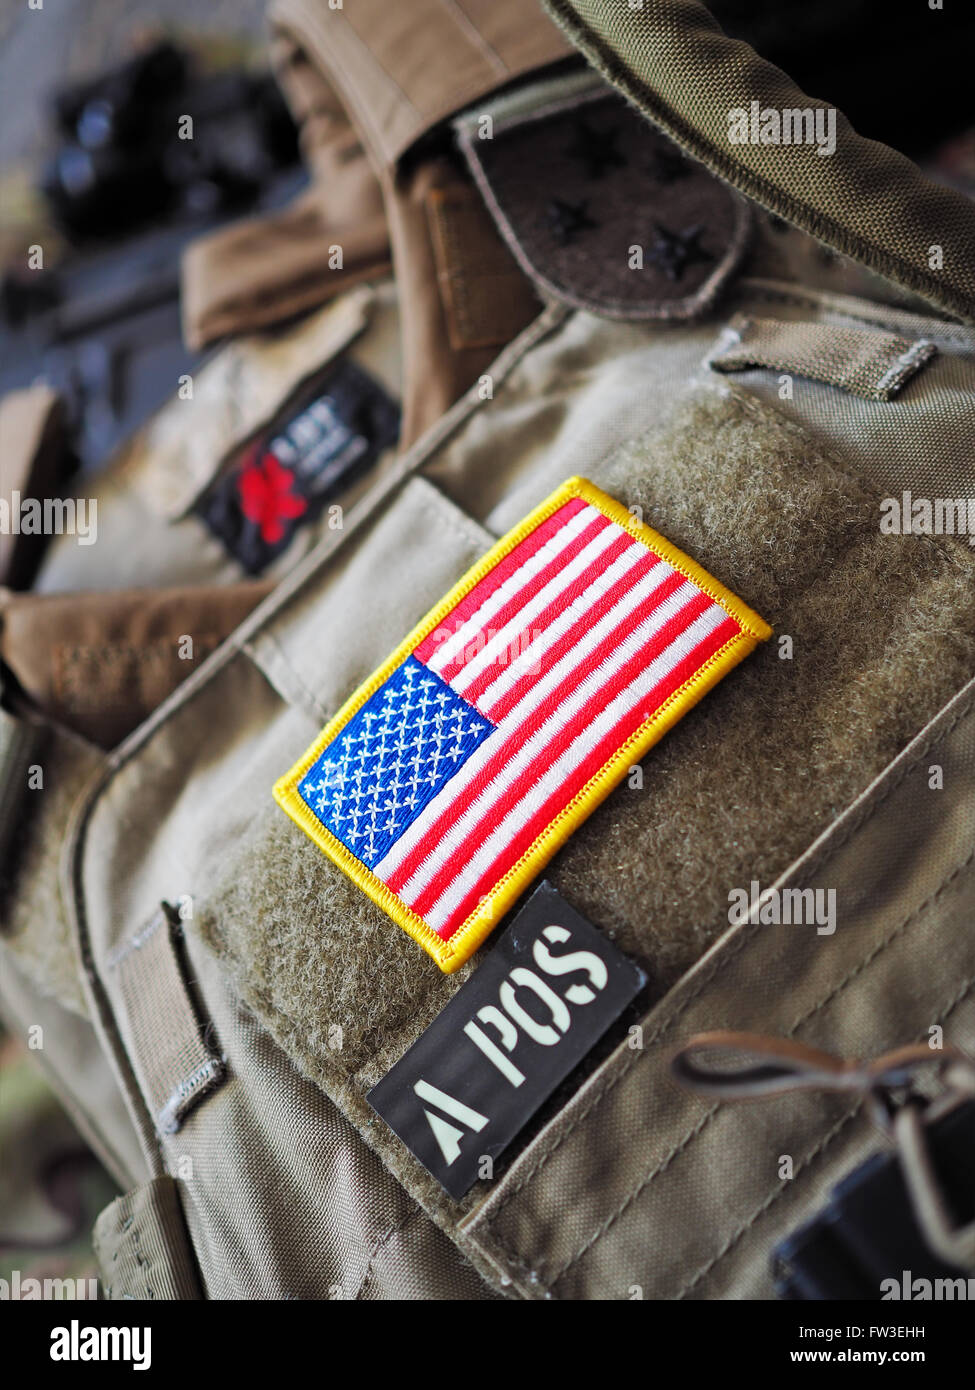 Los Angeles, CA, USA - January 24, 2016: LBT 6094A SLICK Plate Carrier with USA flag patch shallow depth of field - Stock Image